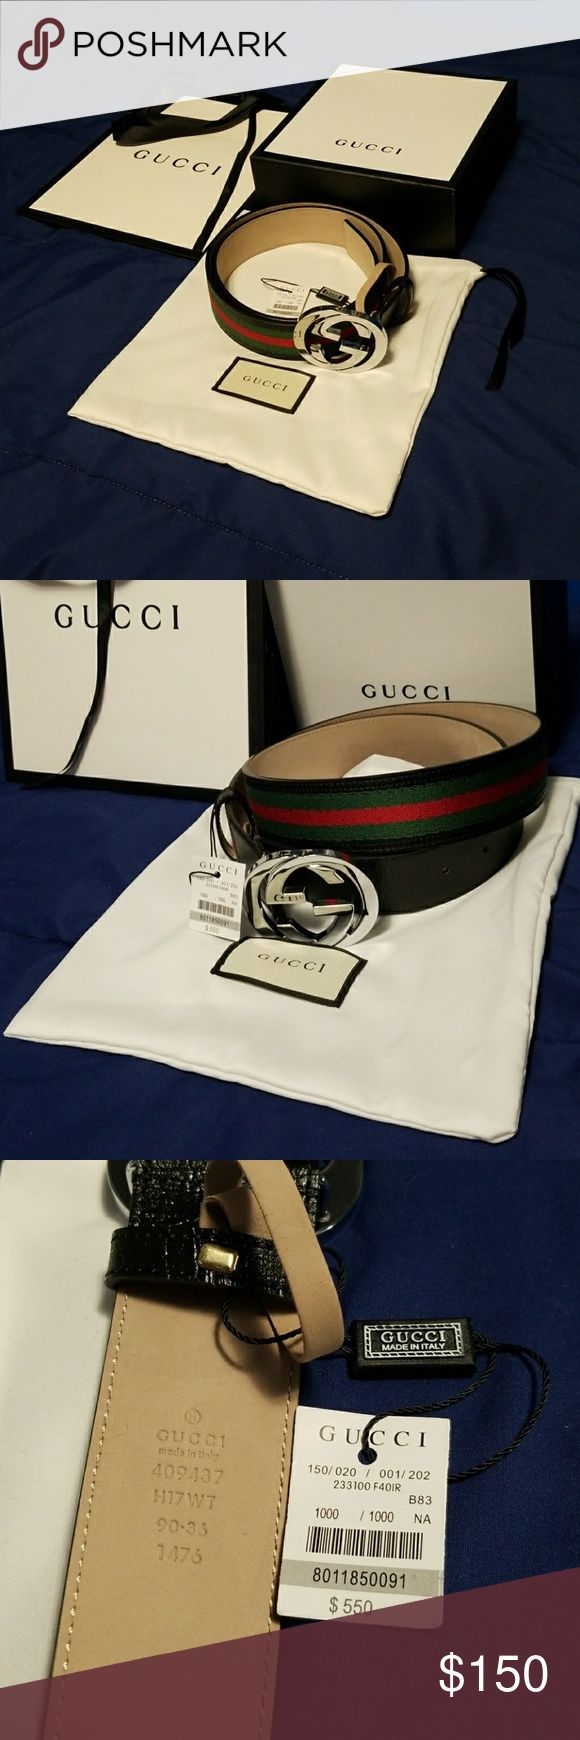 Authentic Gucci Belt Brand new Gucci Belt. 100% authentic or your money back! Reasonable offers are accepted. For any additional questions, comments, or offers please contact me at Transition.ClothingCo.com for a quick response. Gucci Accessories Belts